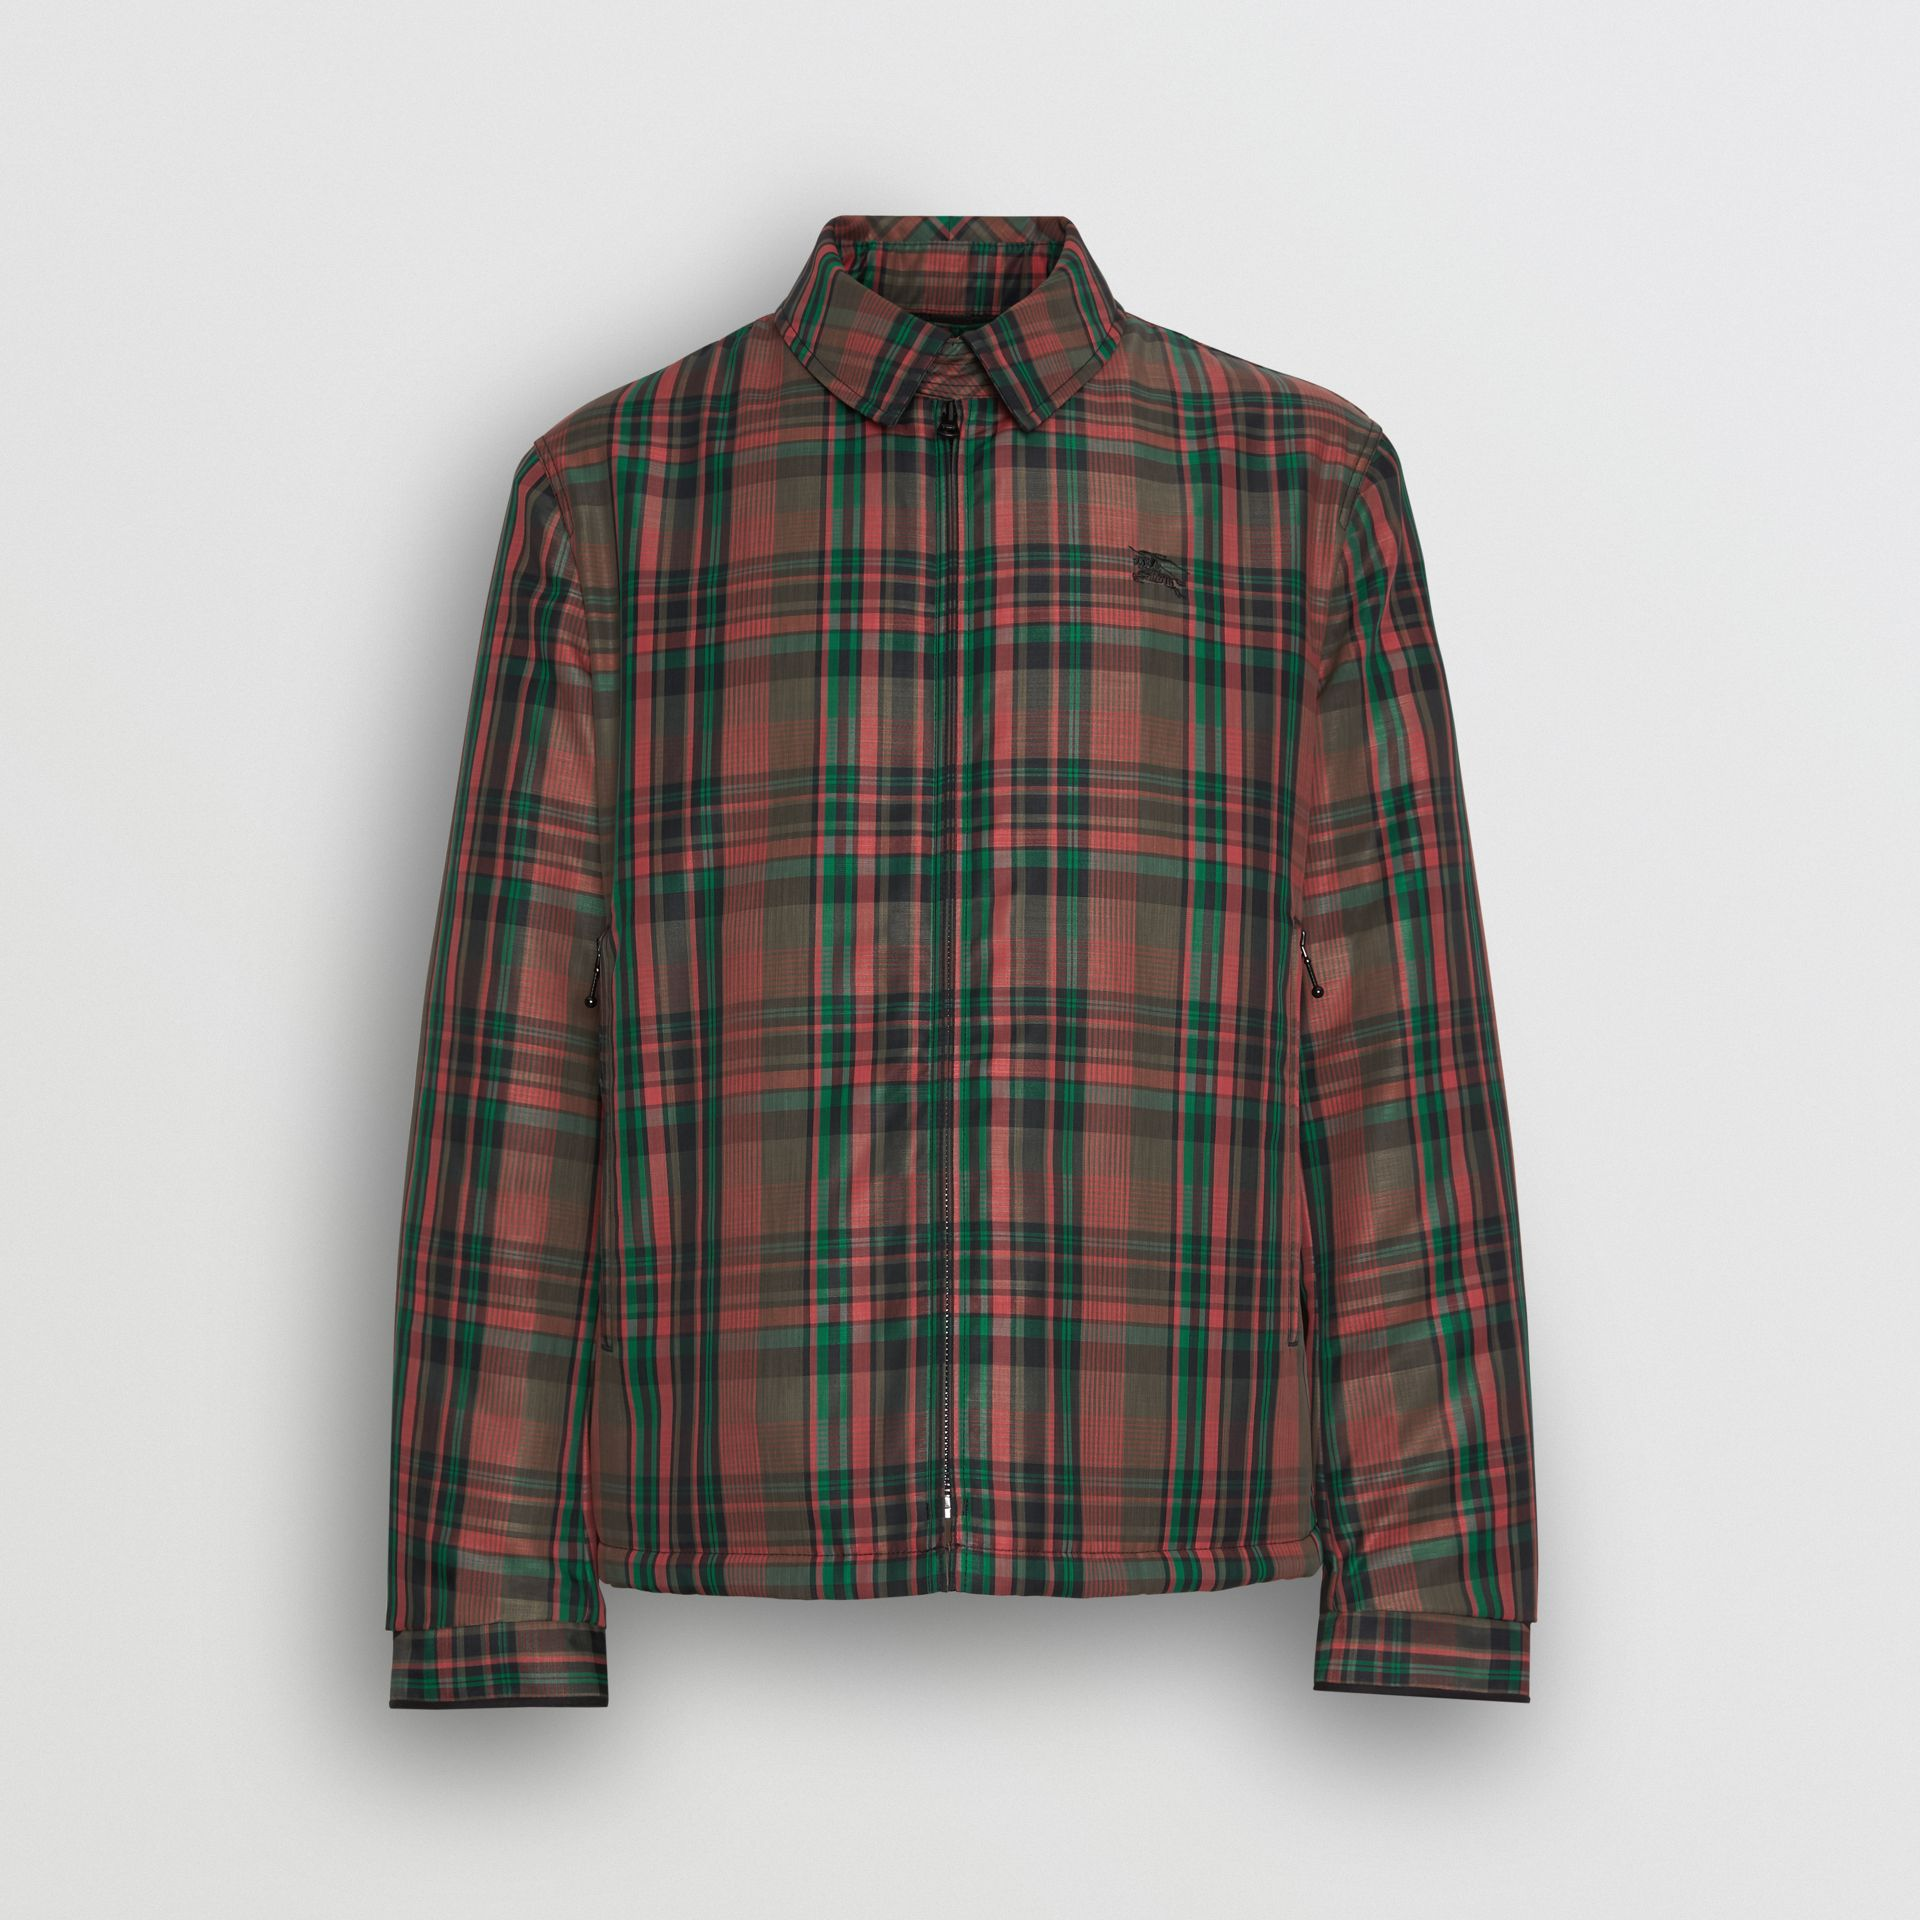 Veste Harrington à motif check avec doublure molletonnée (Rouge Feuille Morte) - Homme | Burberry - photo de la galerie 3